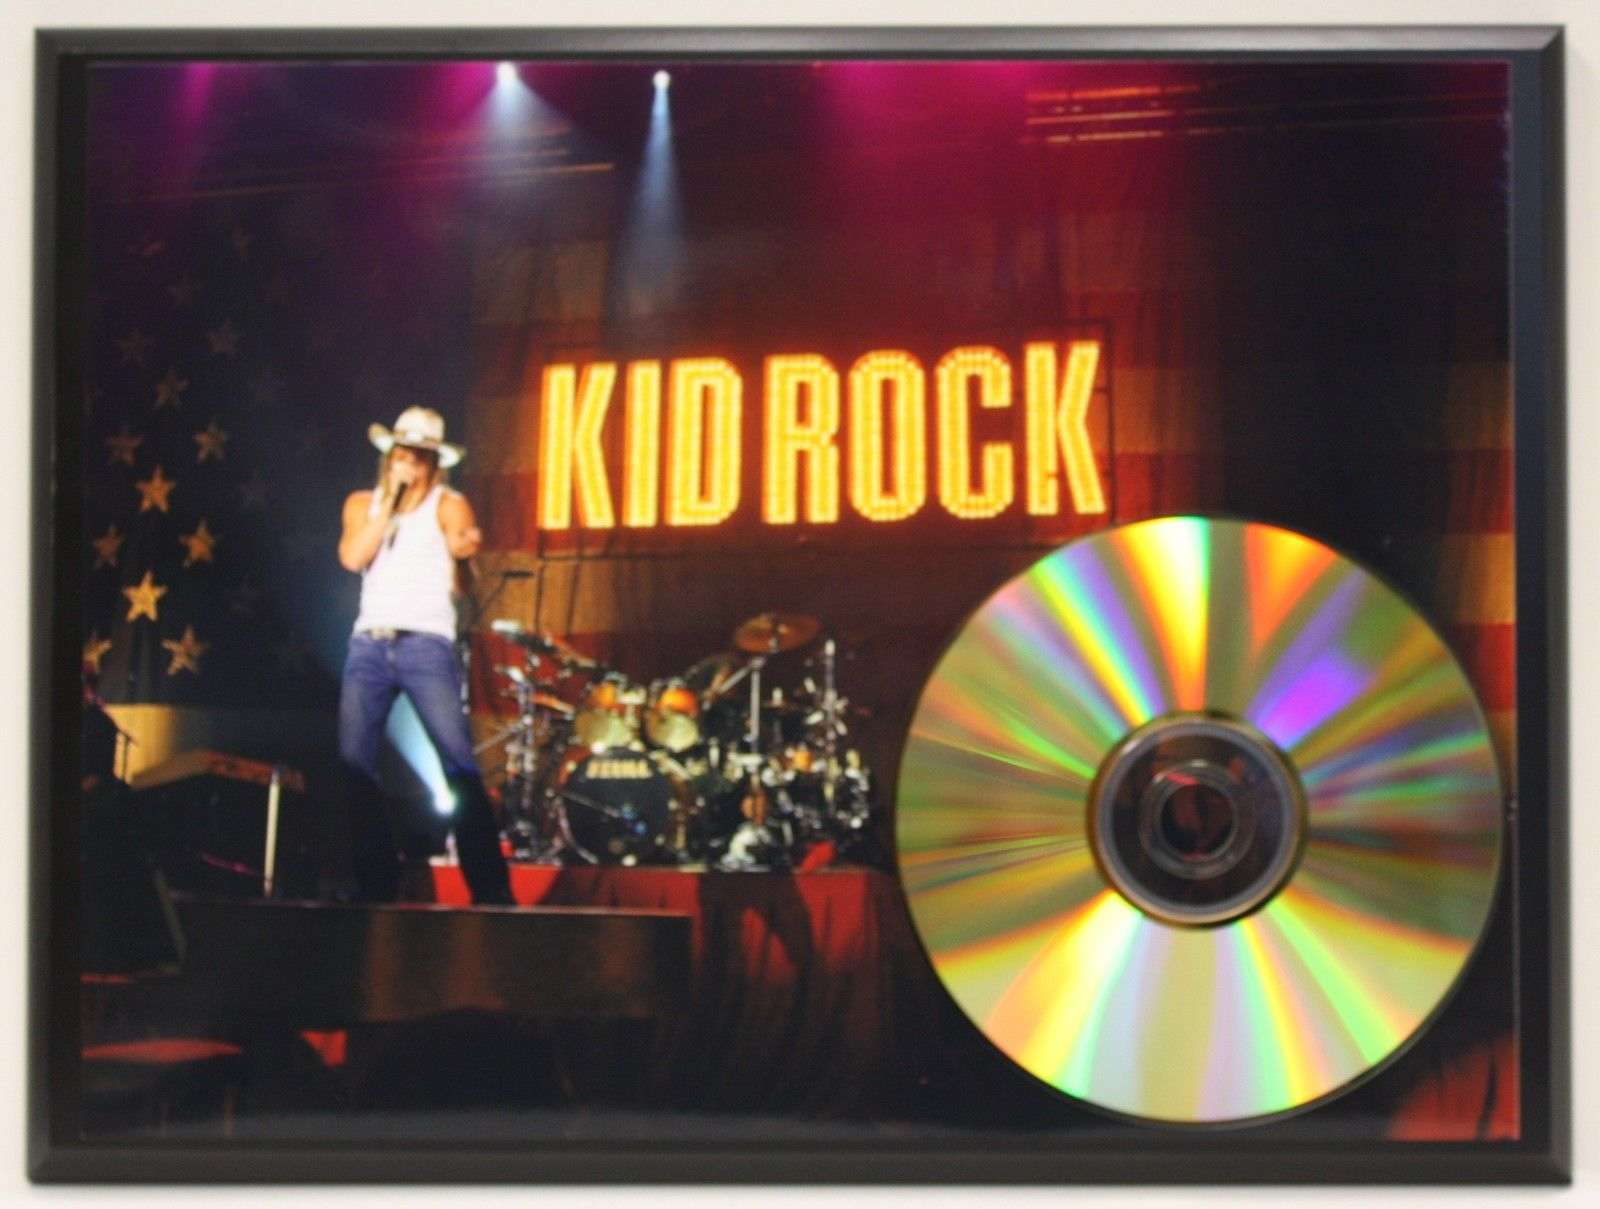 kid rock 24 kt ltd edition gold cd plaque free u s priority shipping gold record awards album. Black Bedroom Furniture Sets. Home Design Ideas